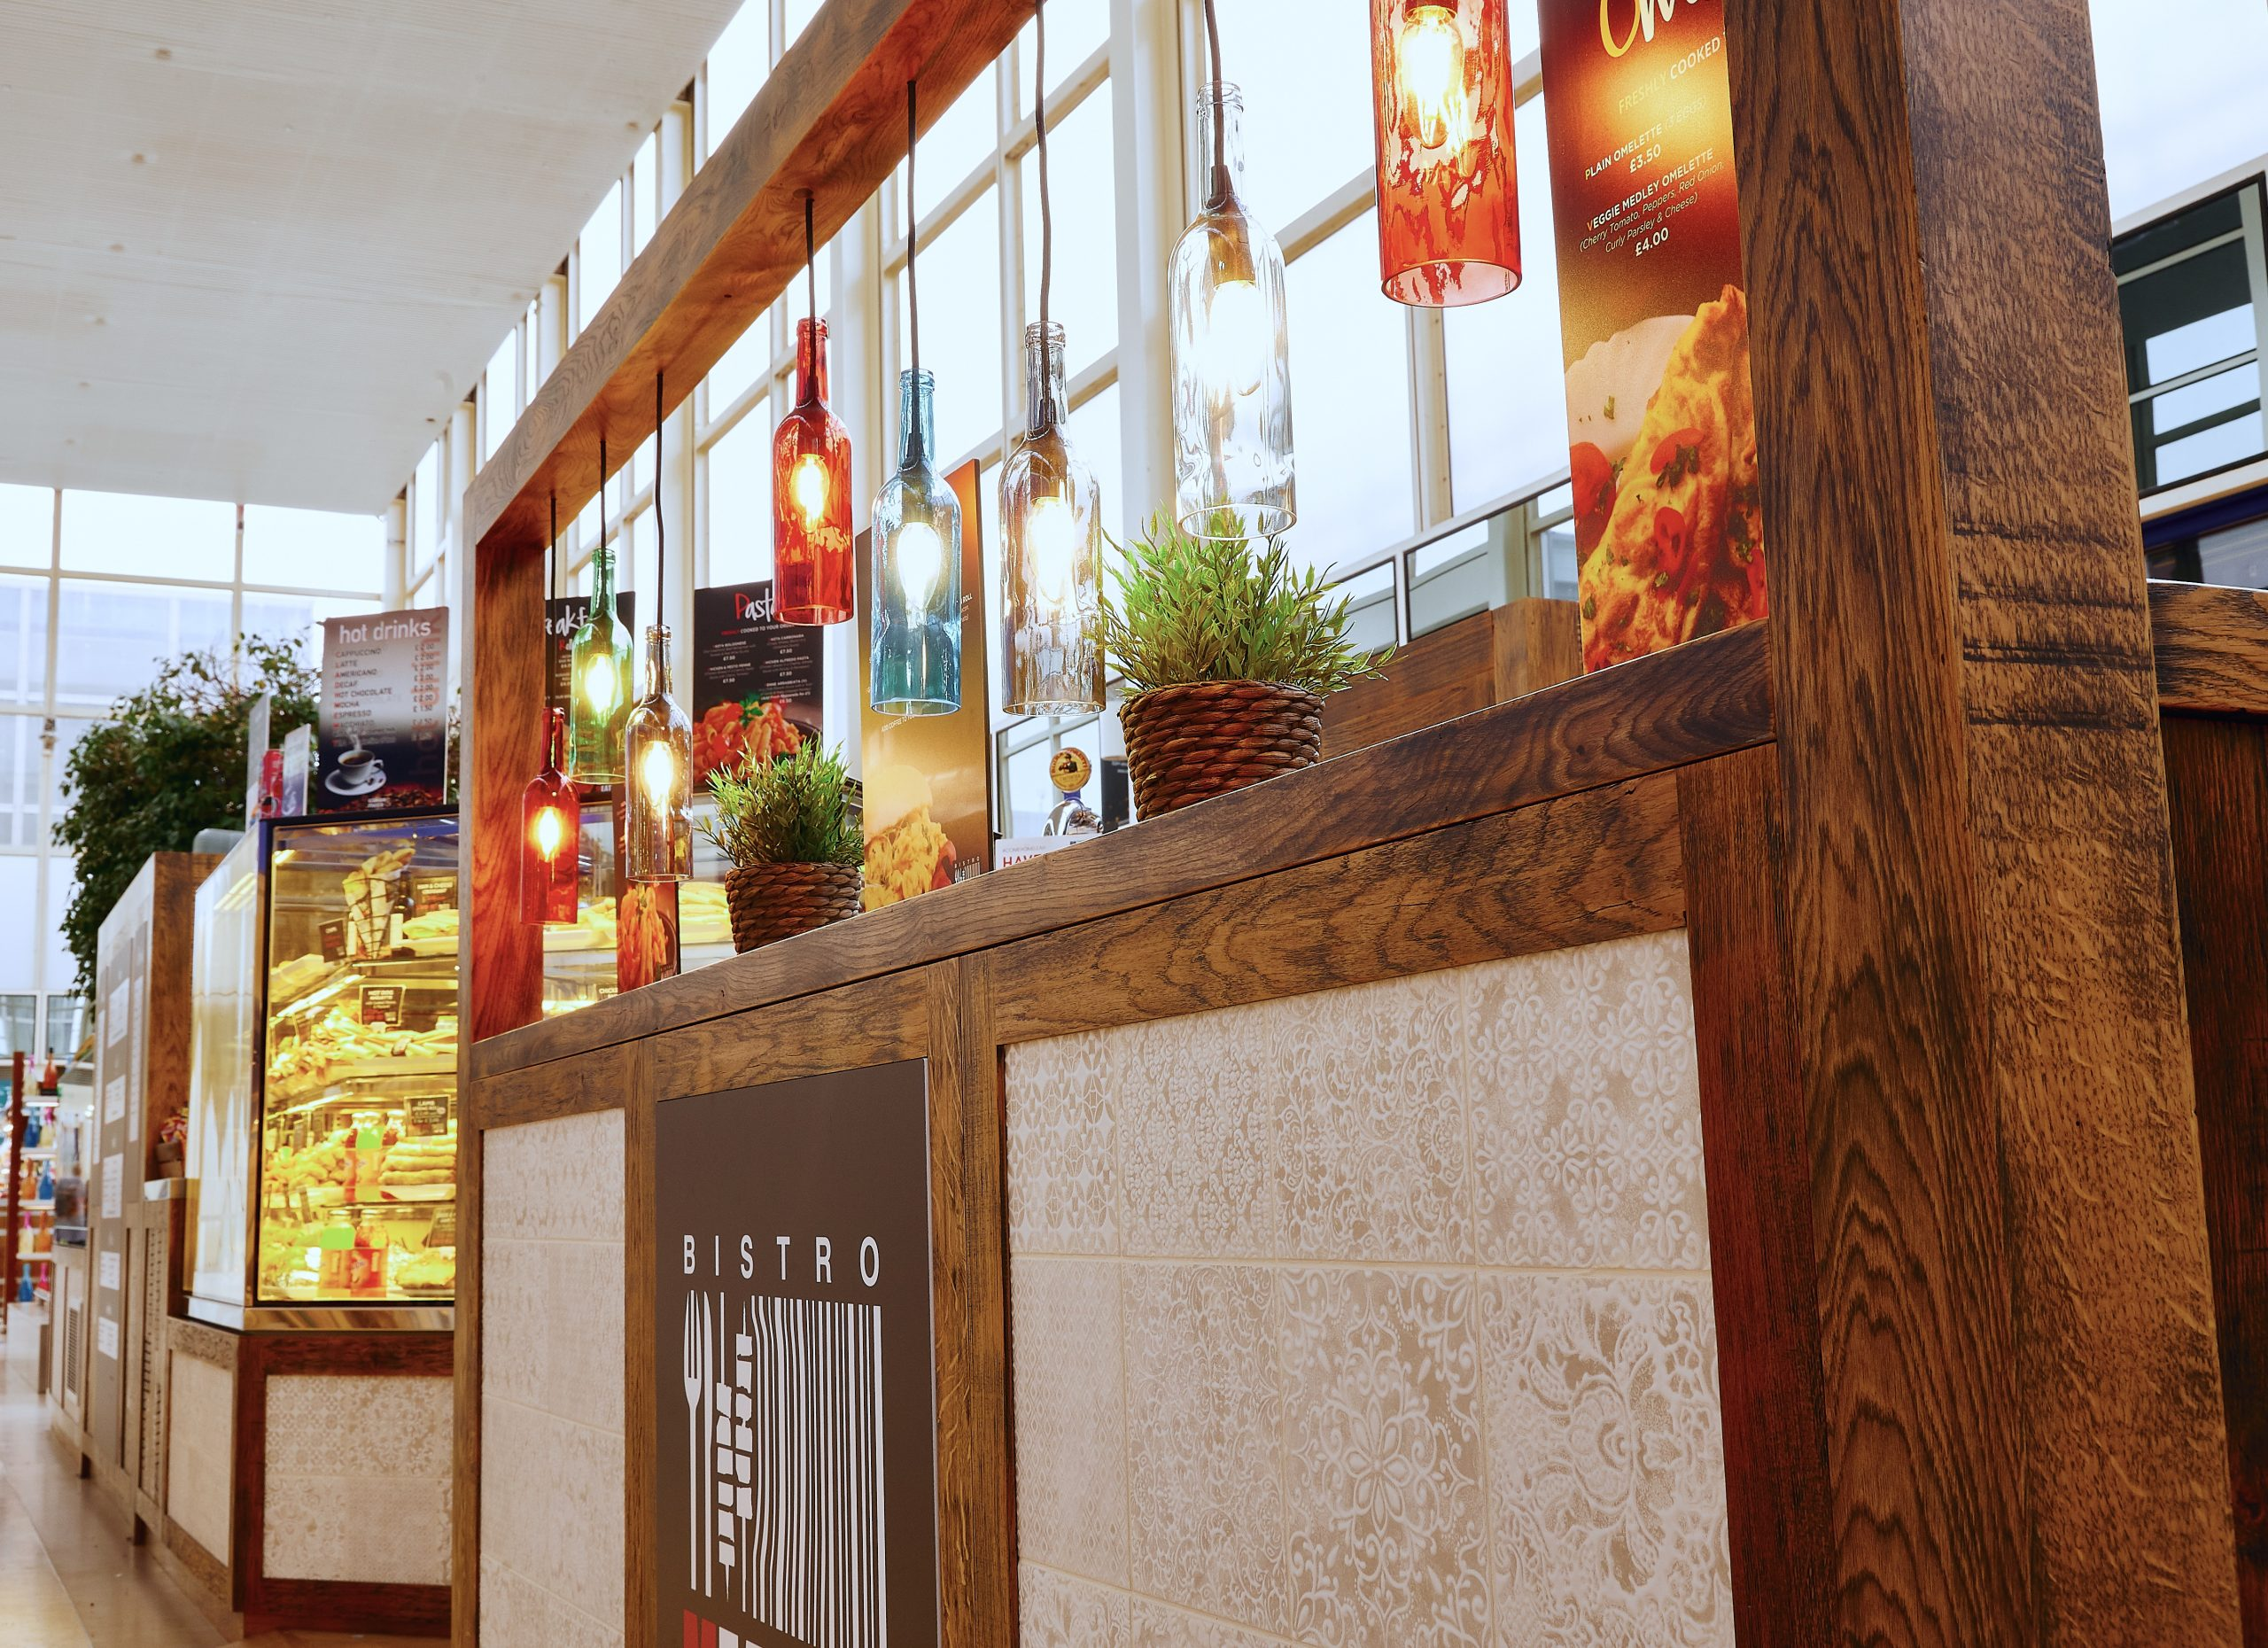 Colourful wine bottle lights hang above rustic bistro seating area